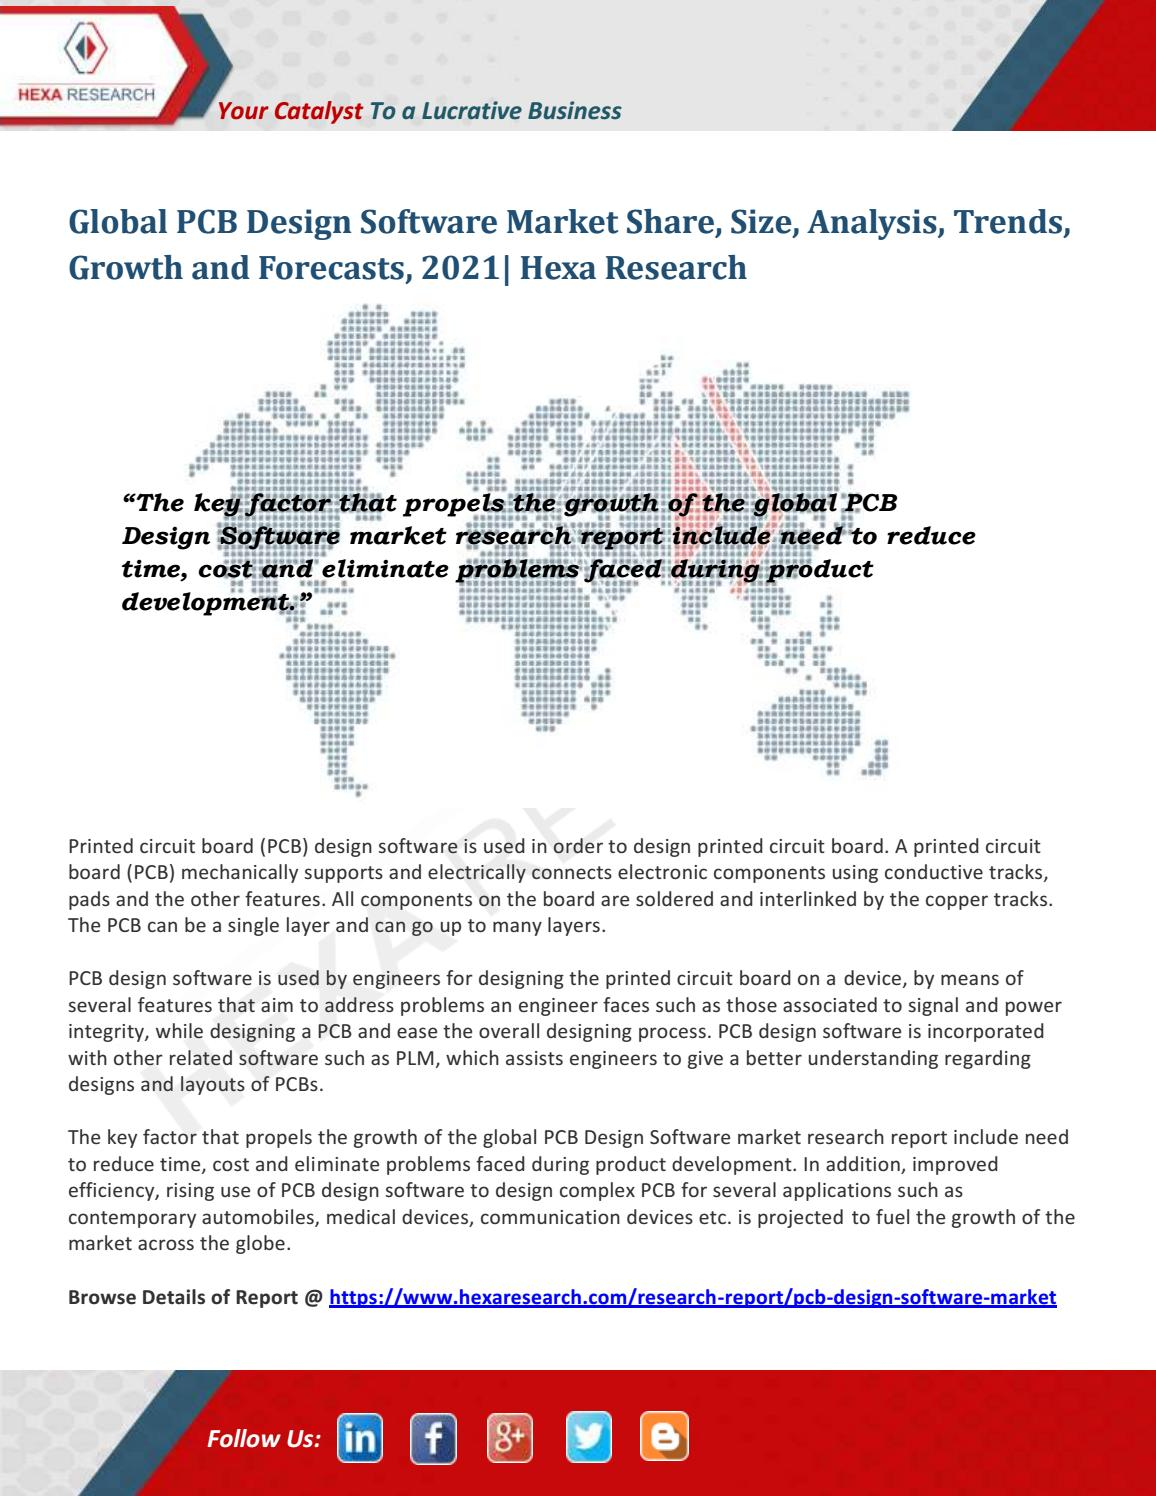 PCB Design Software Market Size, Share, Growth and Forecast to 2021 ...